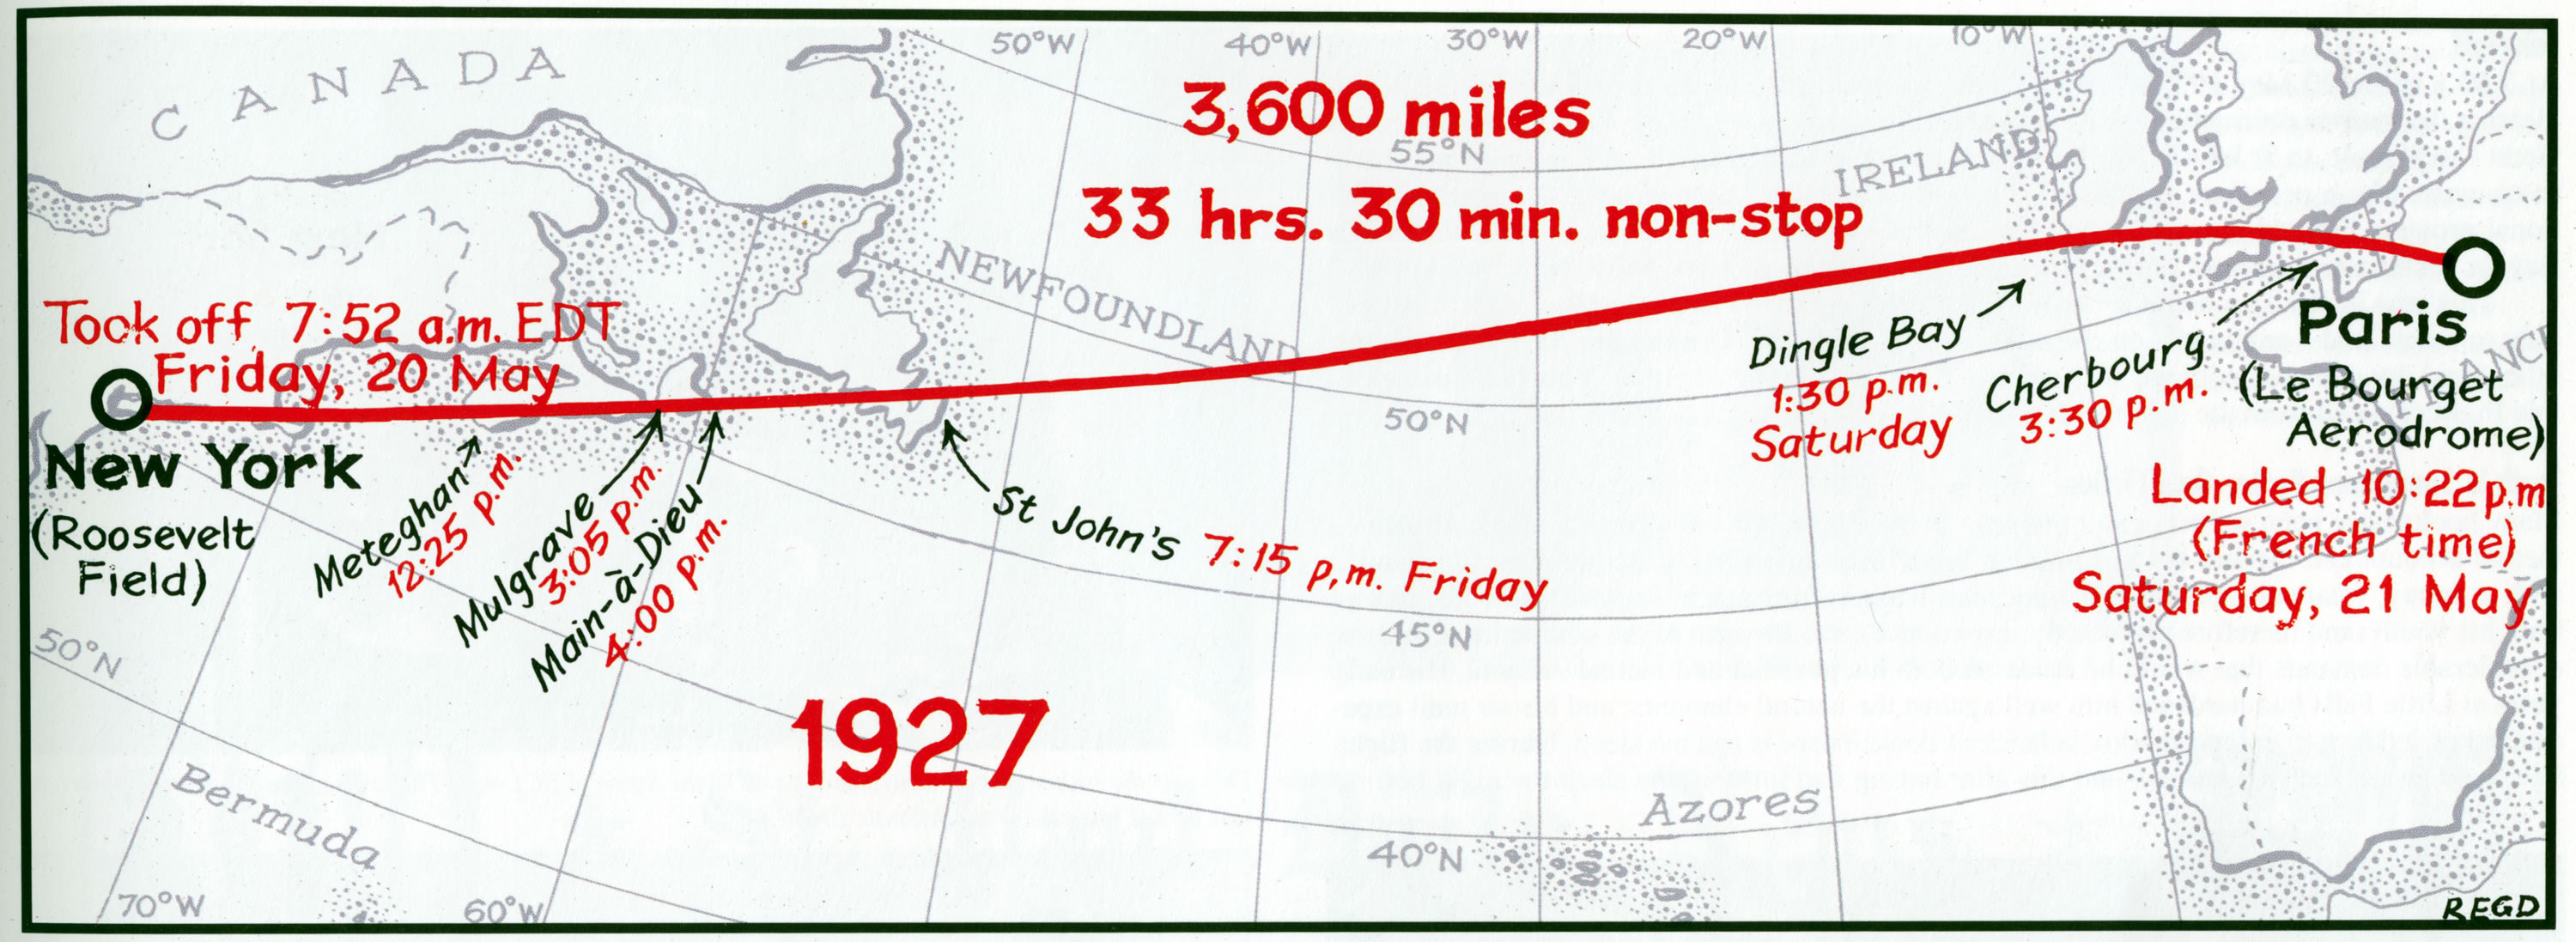 Map of Charles Lindbergh's May 20-21, 1927, first solo non-stop flight across the Atlantic Ocean, New York to Paris.